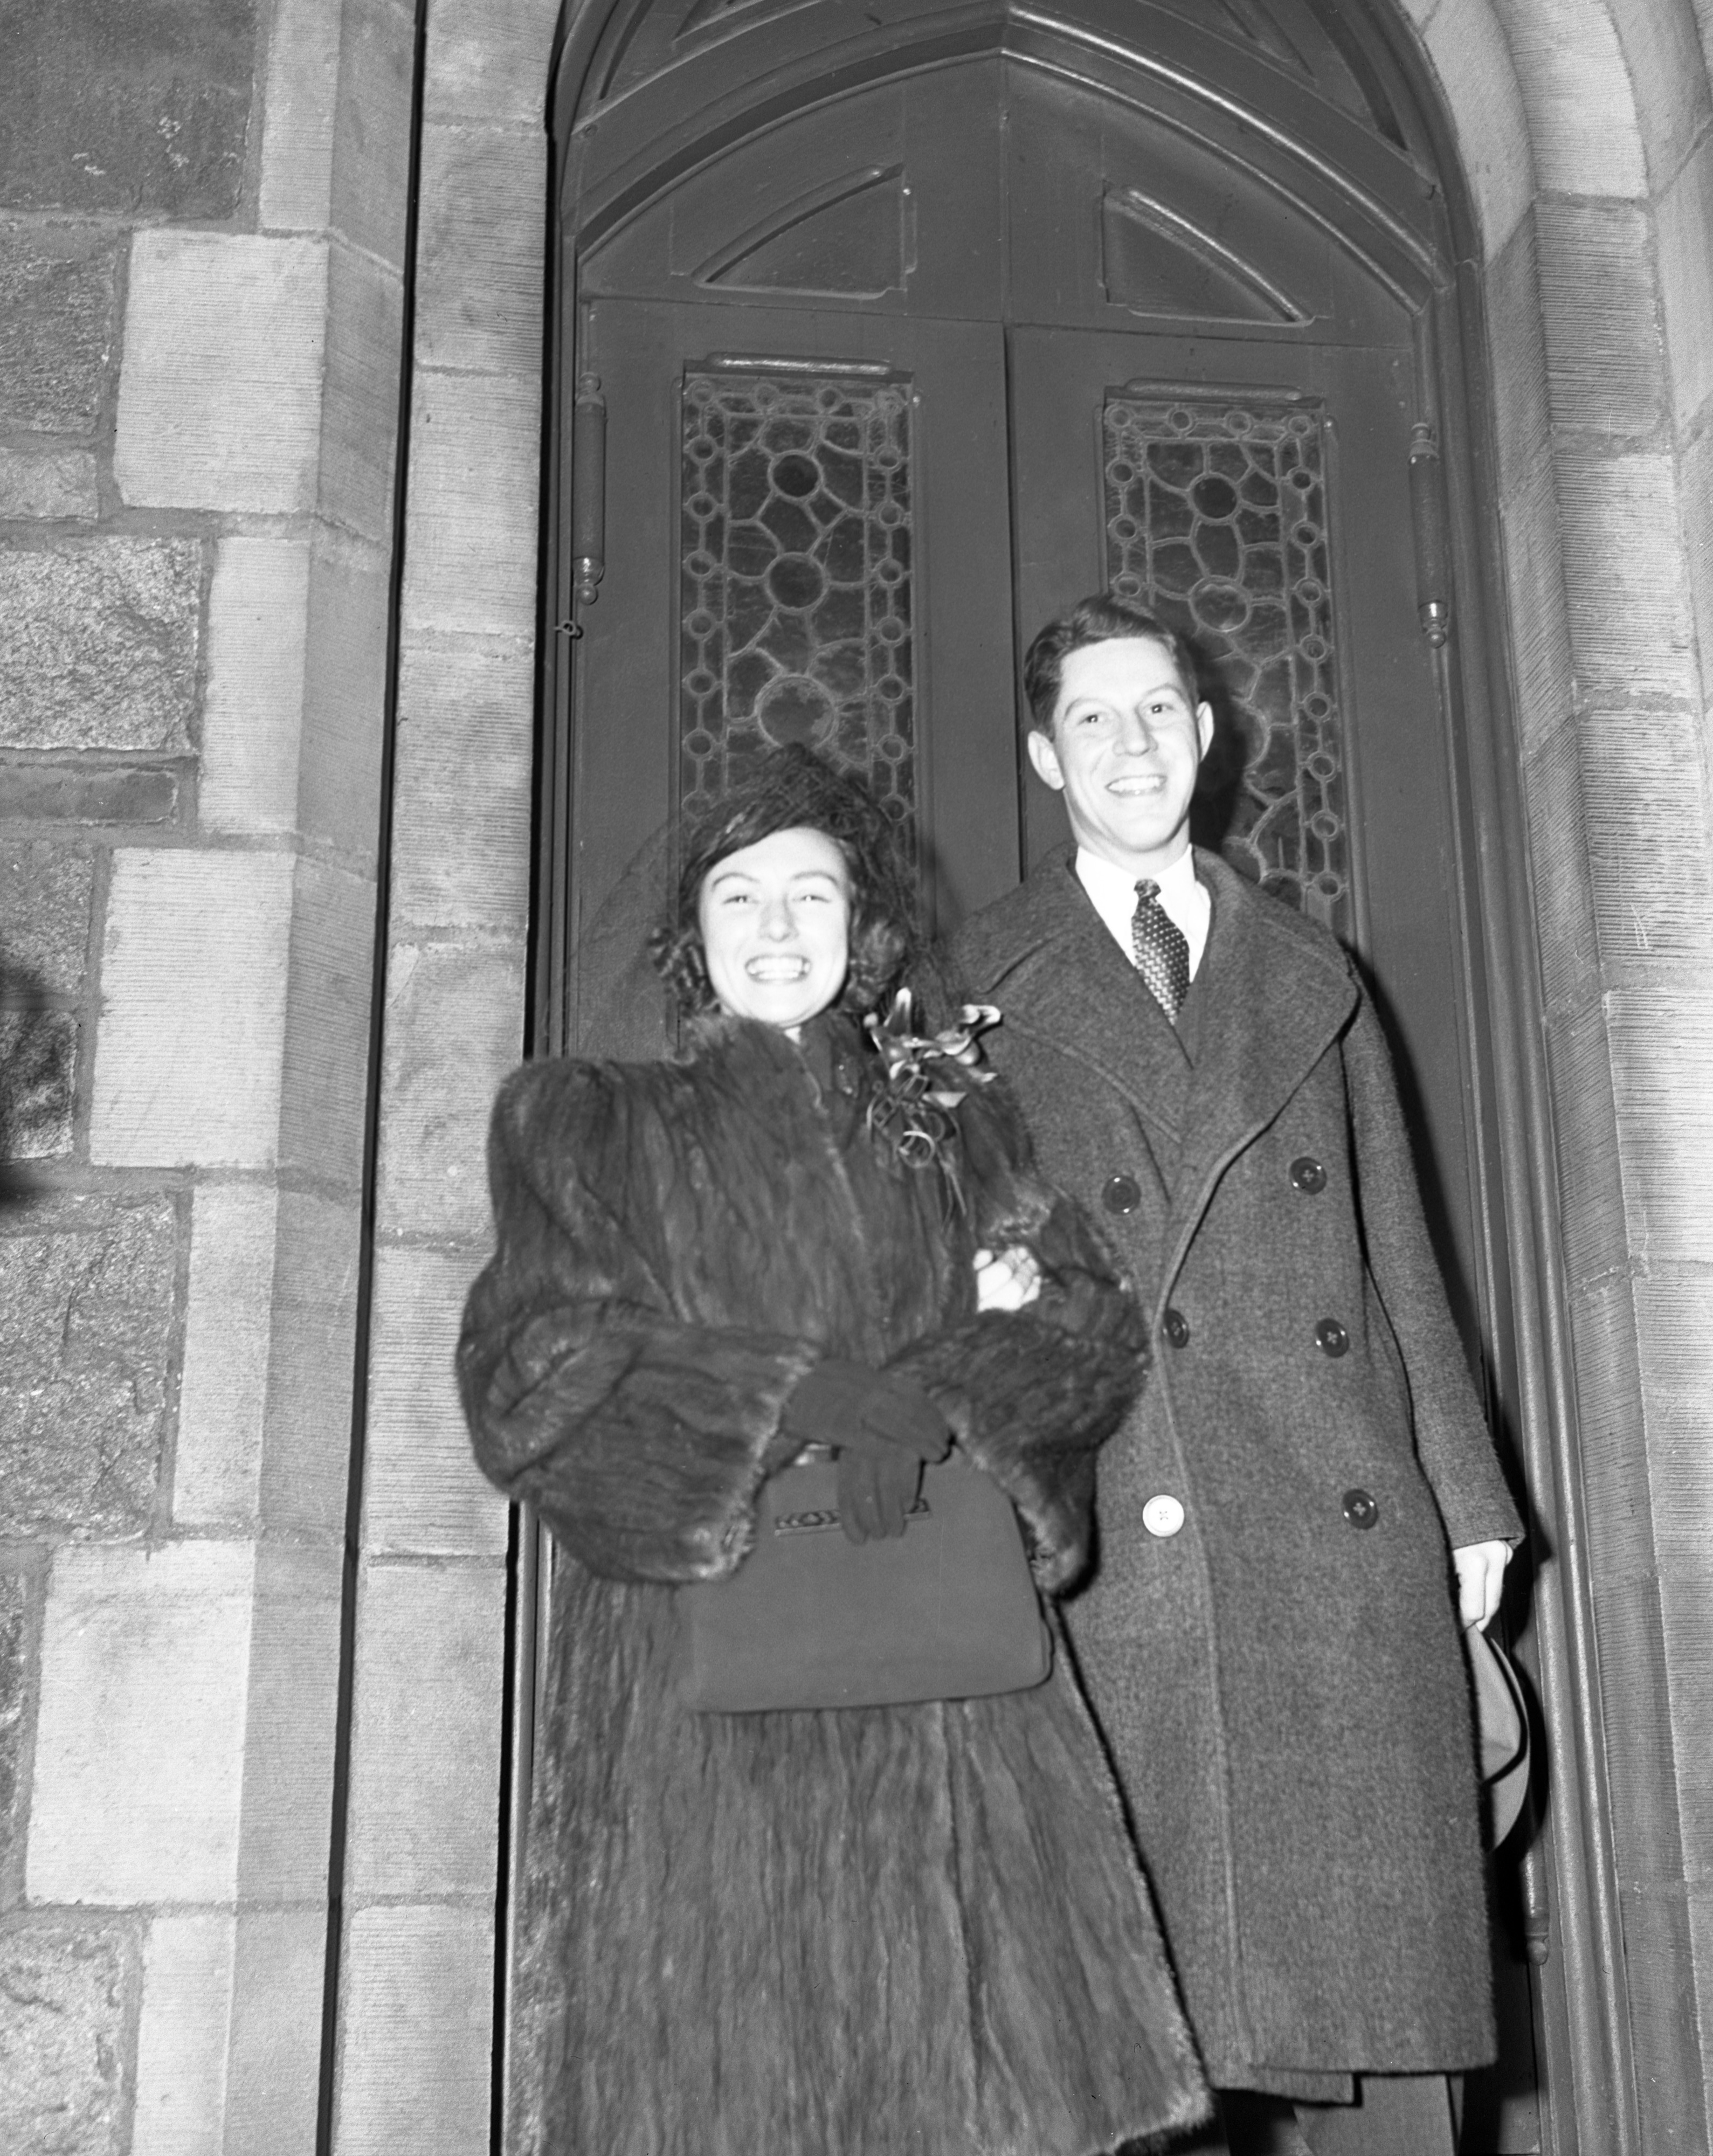 Just Married: Margaret Cowie & Dr. John D. Adcock, December 28, 1940 image